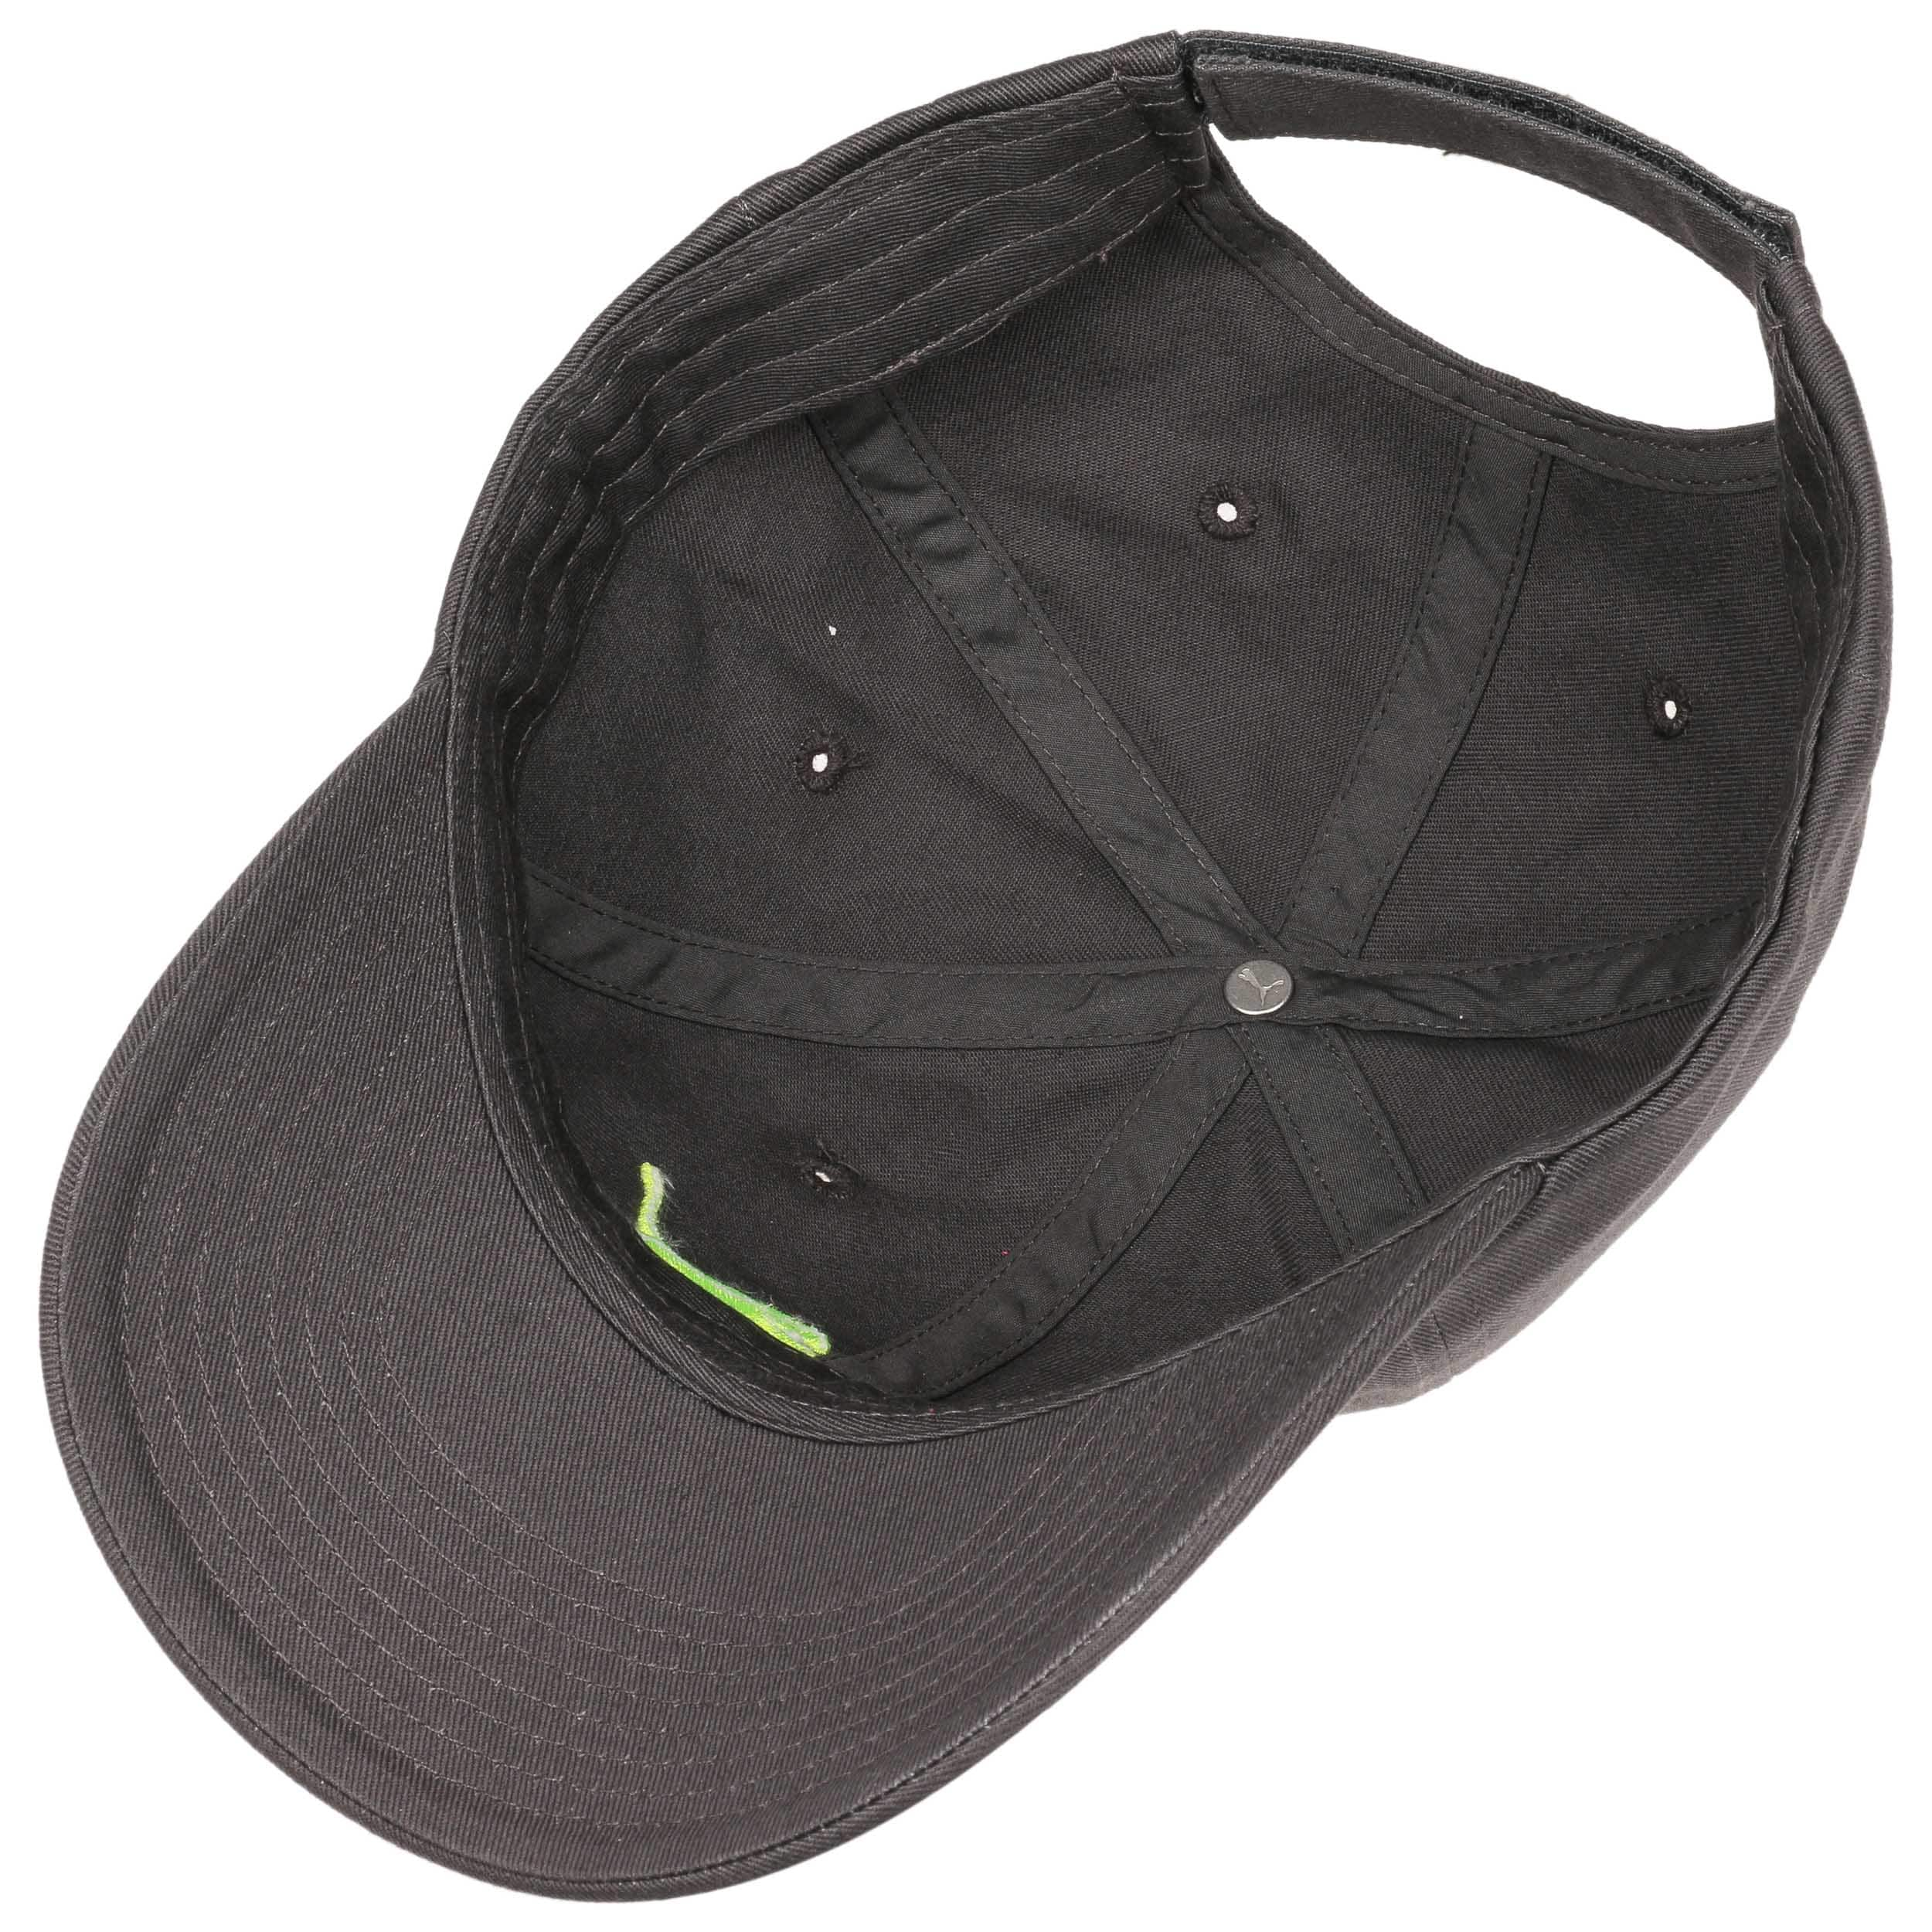 1 Baseball Cap by PUMA - dark grey 2 ... aac9b7722d19